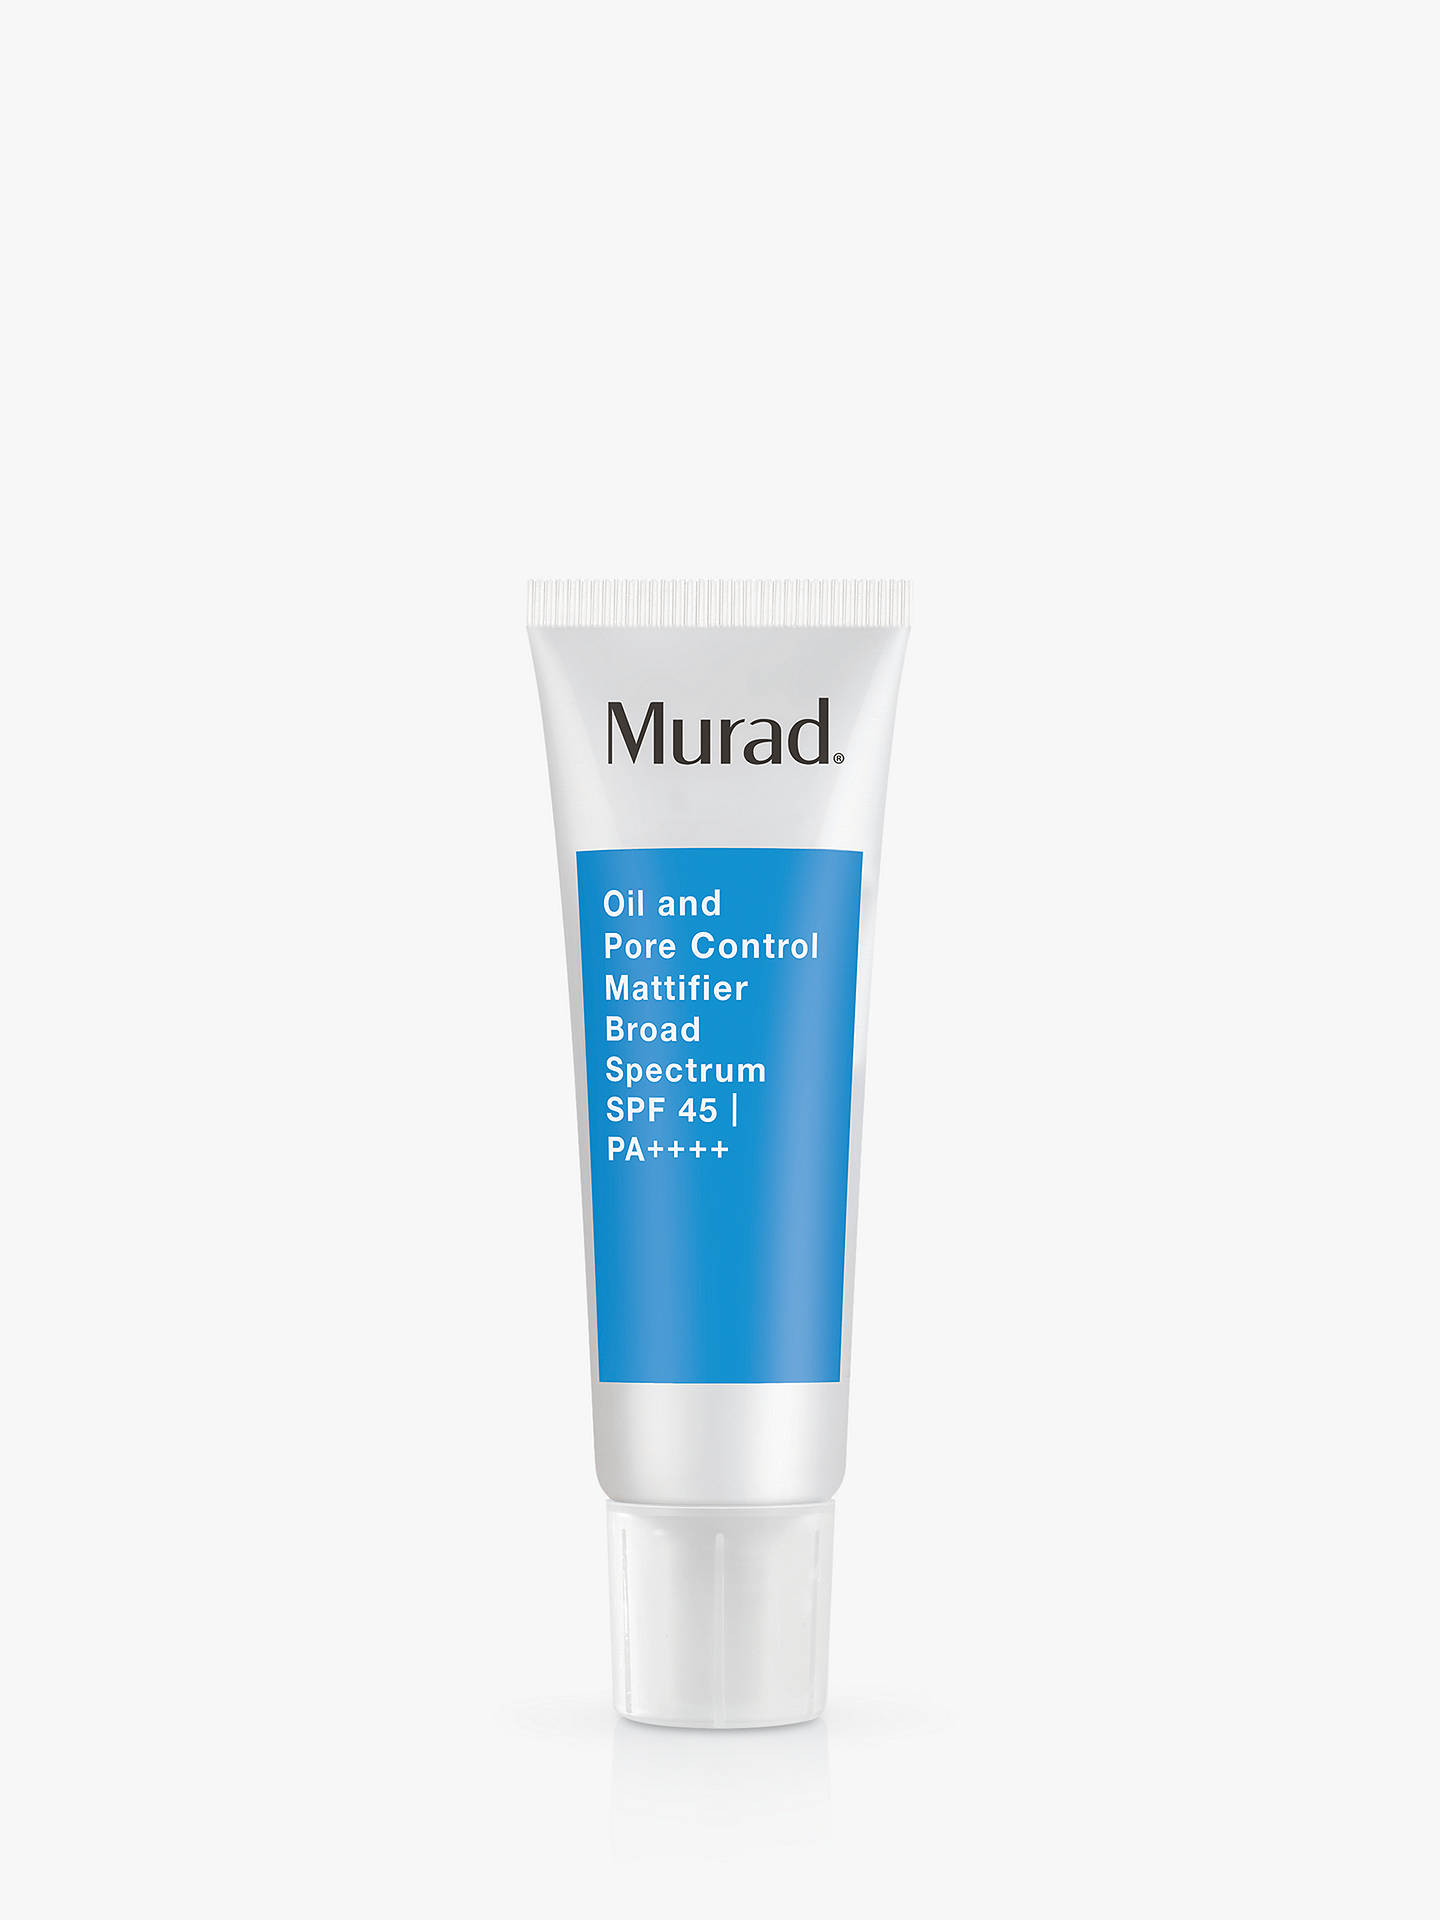 Buy Murad Oil And Pore Control Mattifier SPF 45 PA ++++, 50ml Online at johnlewis.com